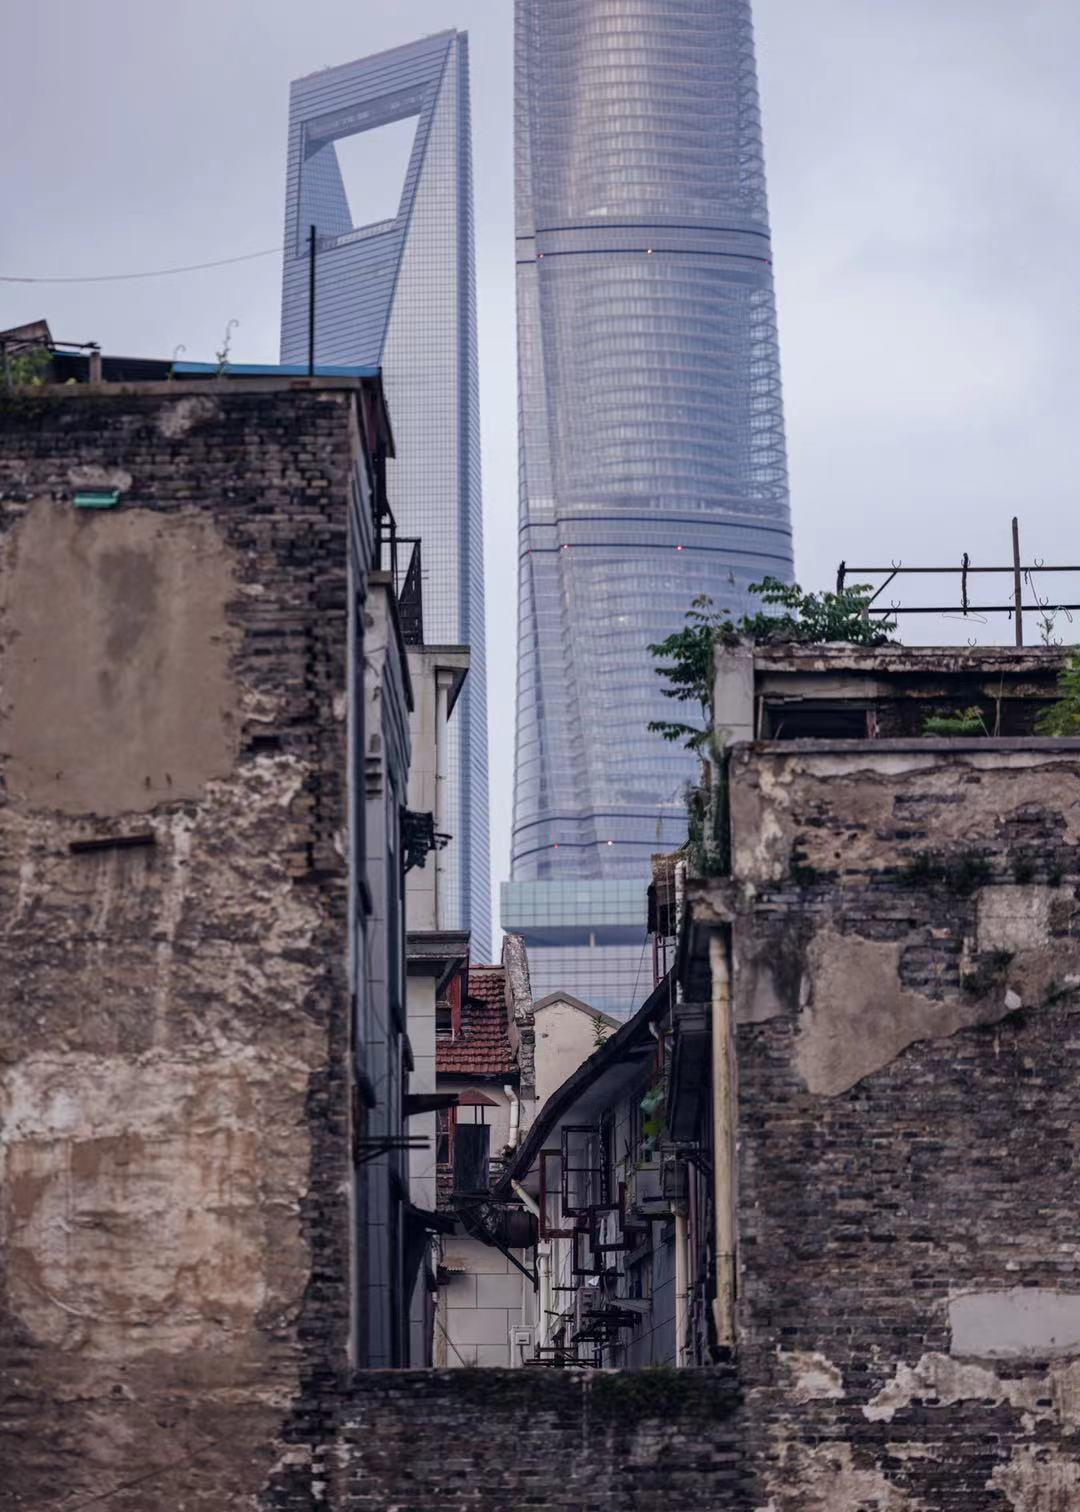 Skyscrapers tower over crumbling brick lane houses